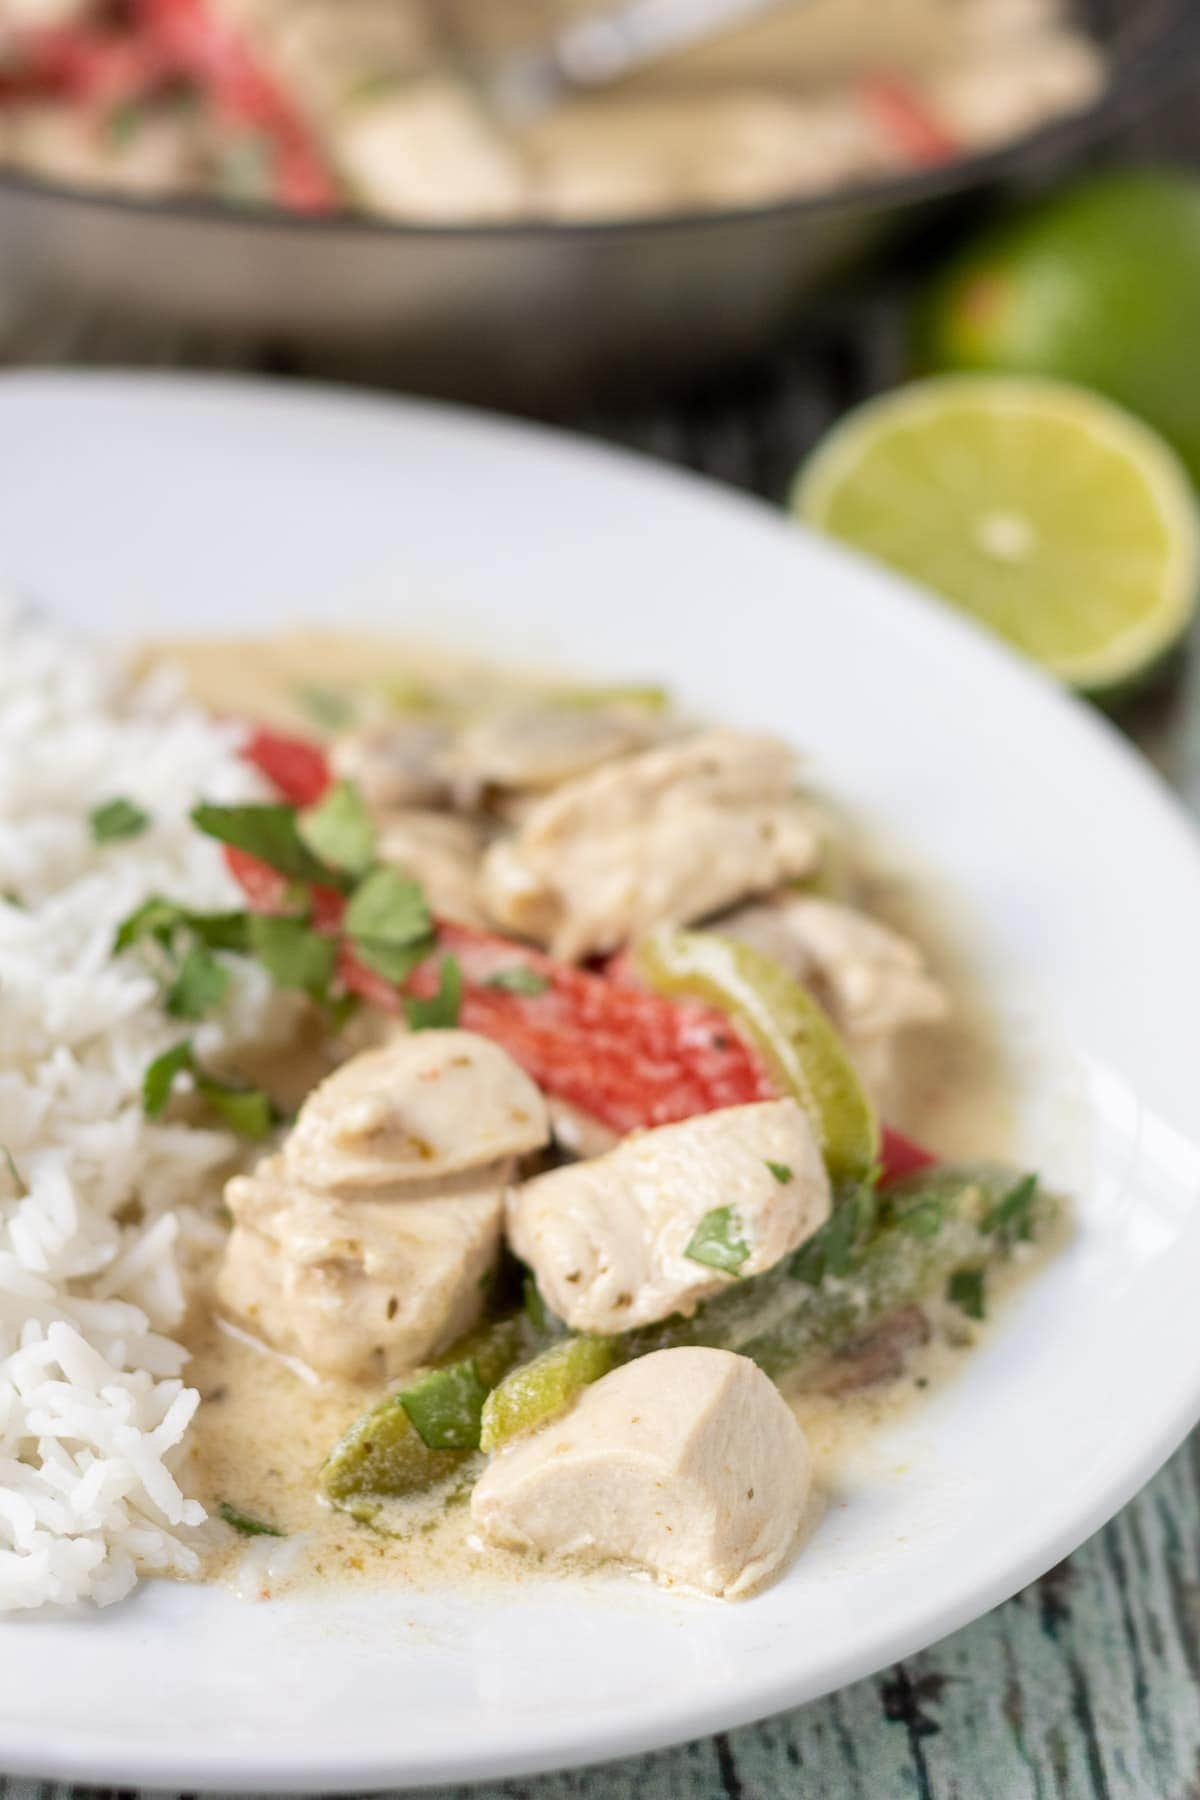 A plate of easy Thai green chicken curry served with basmati rice.